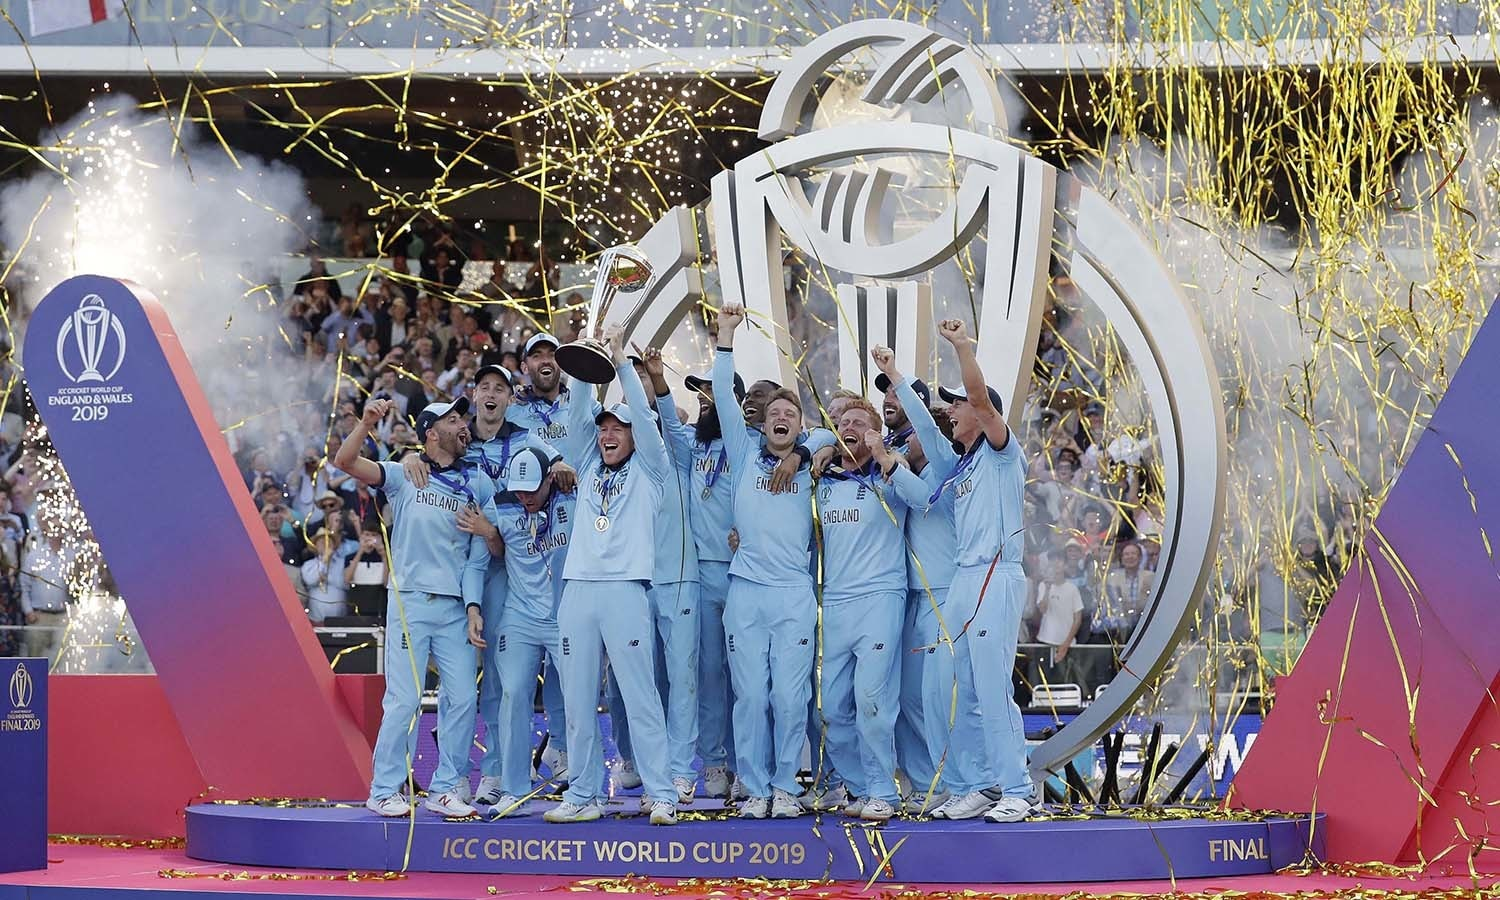 England's captain Eoin Morgan raises the trophy after winning the Cricket World Cup final. — AP